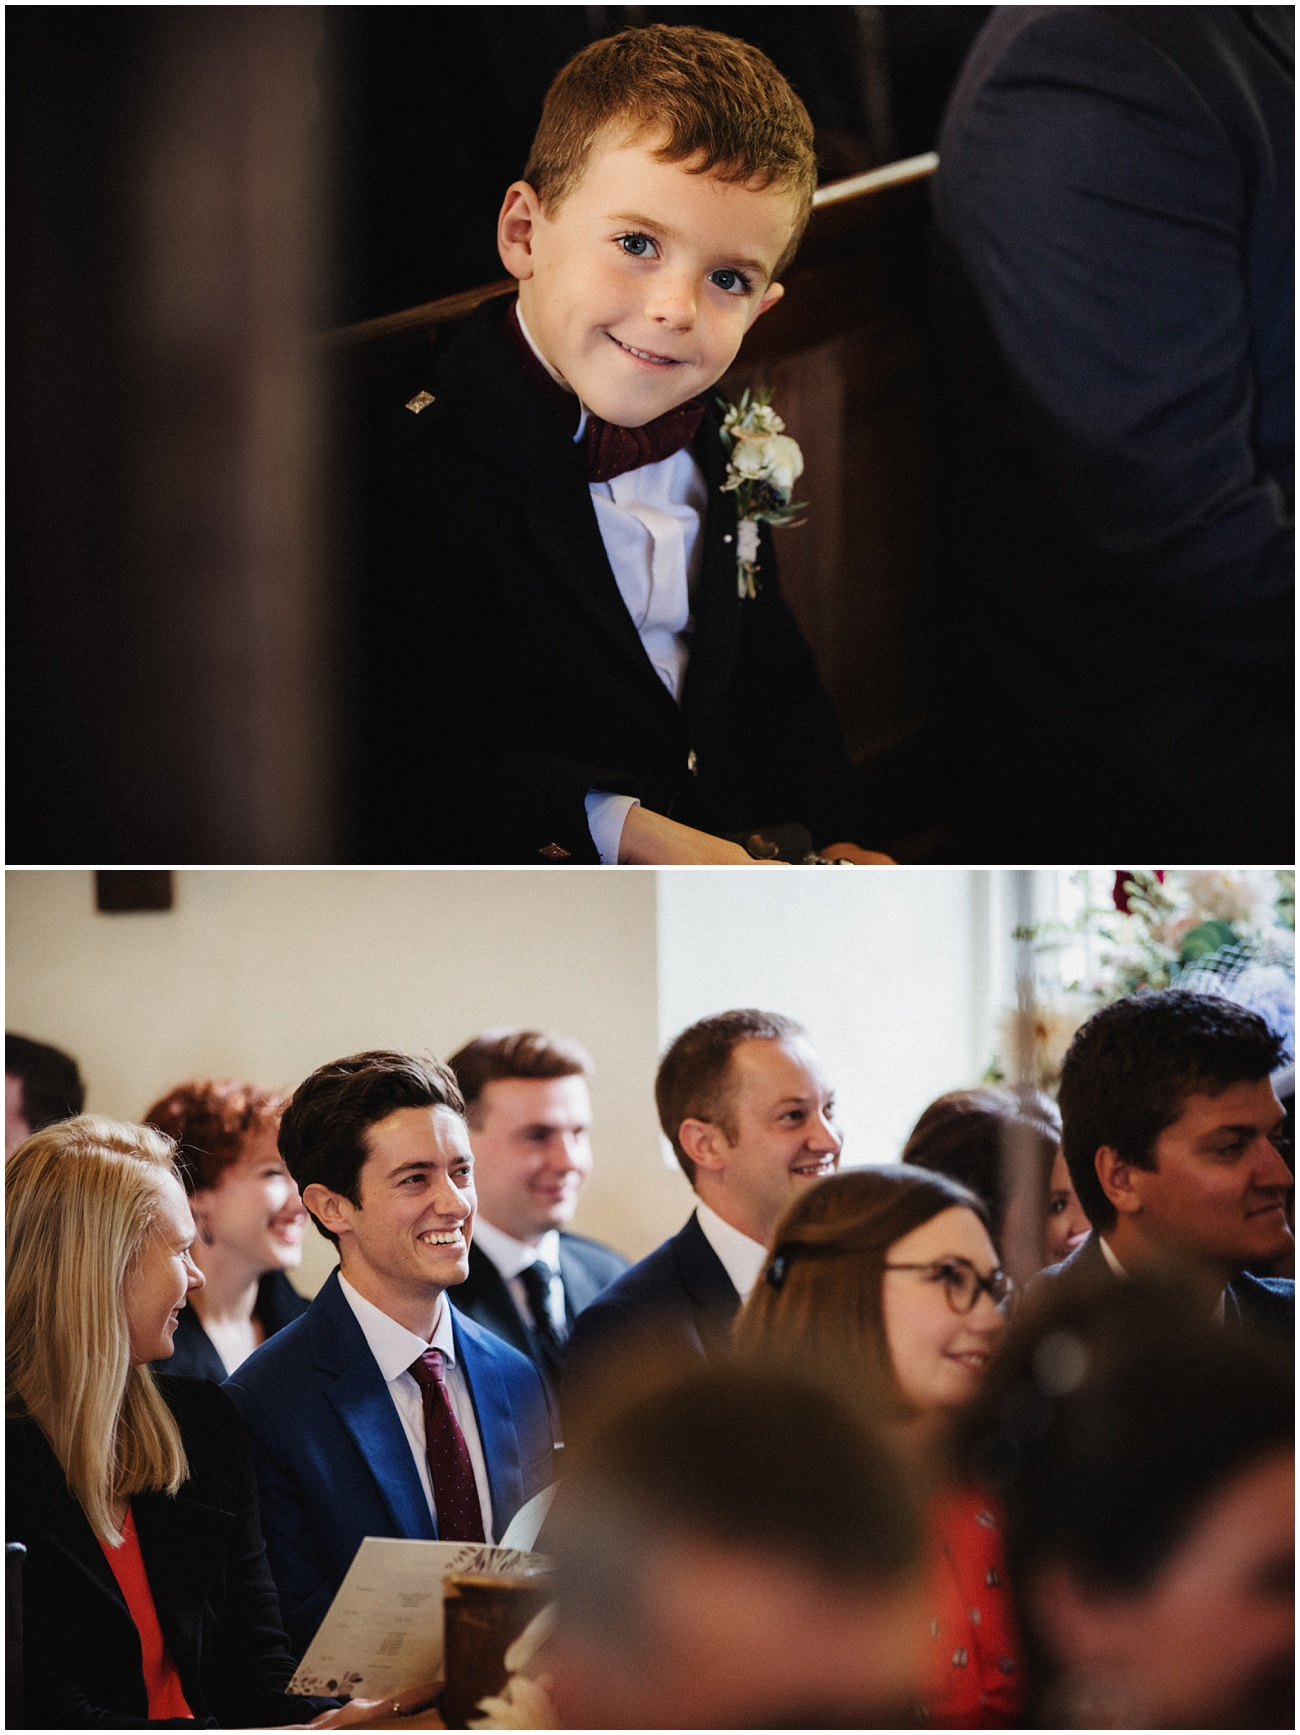 Images of the wedding guests laughing during the ceremony